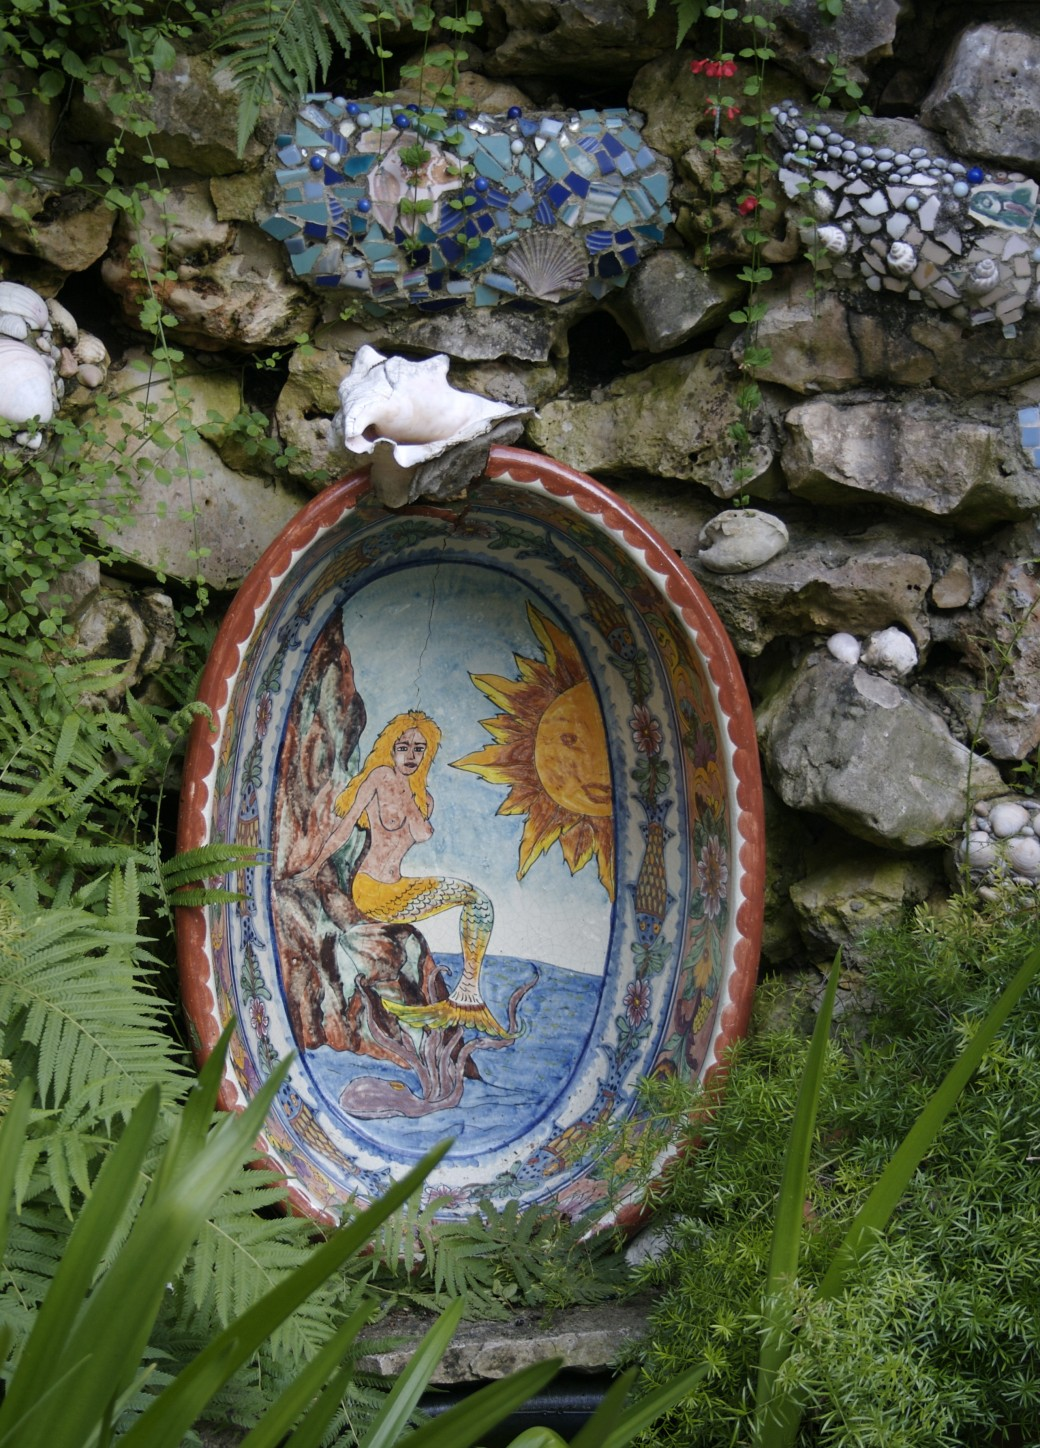 mermaid Mexican painted shrine grotto fishpond